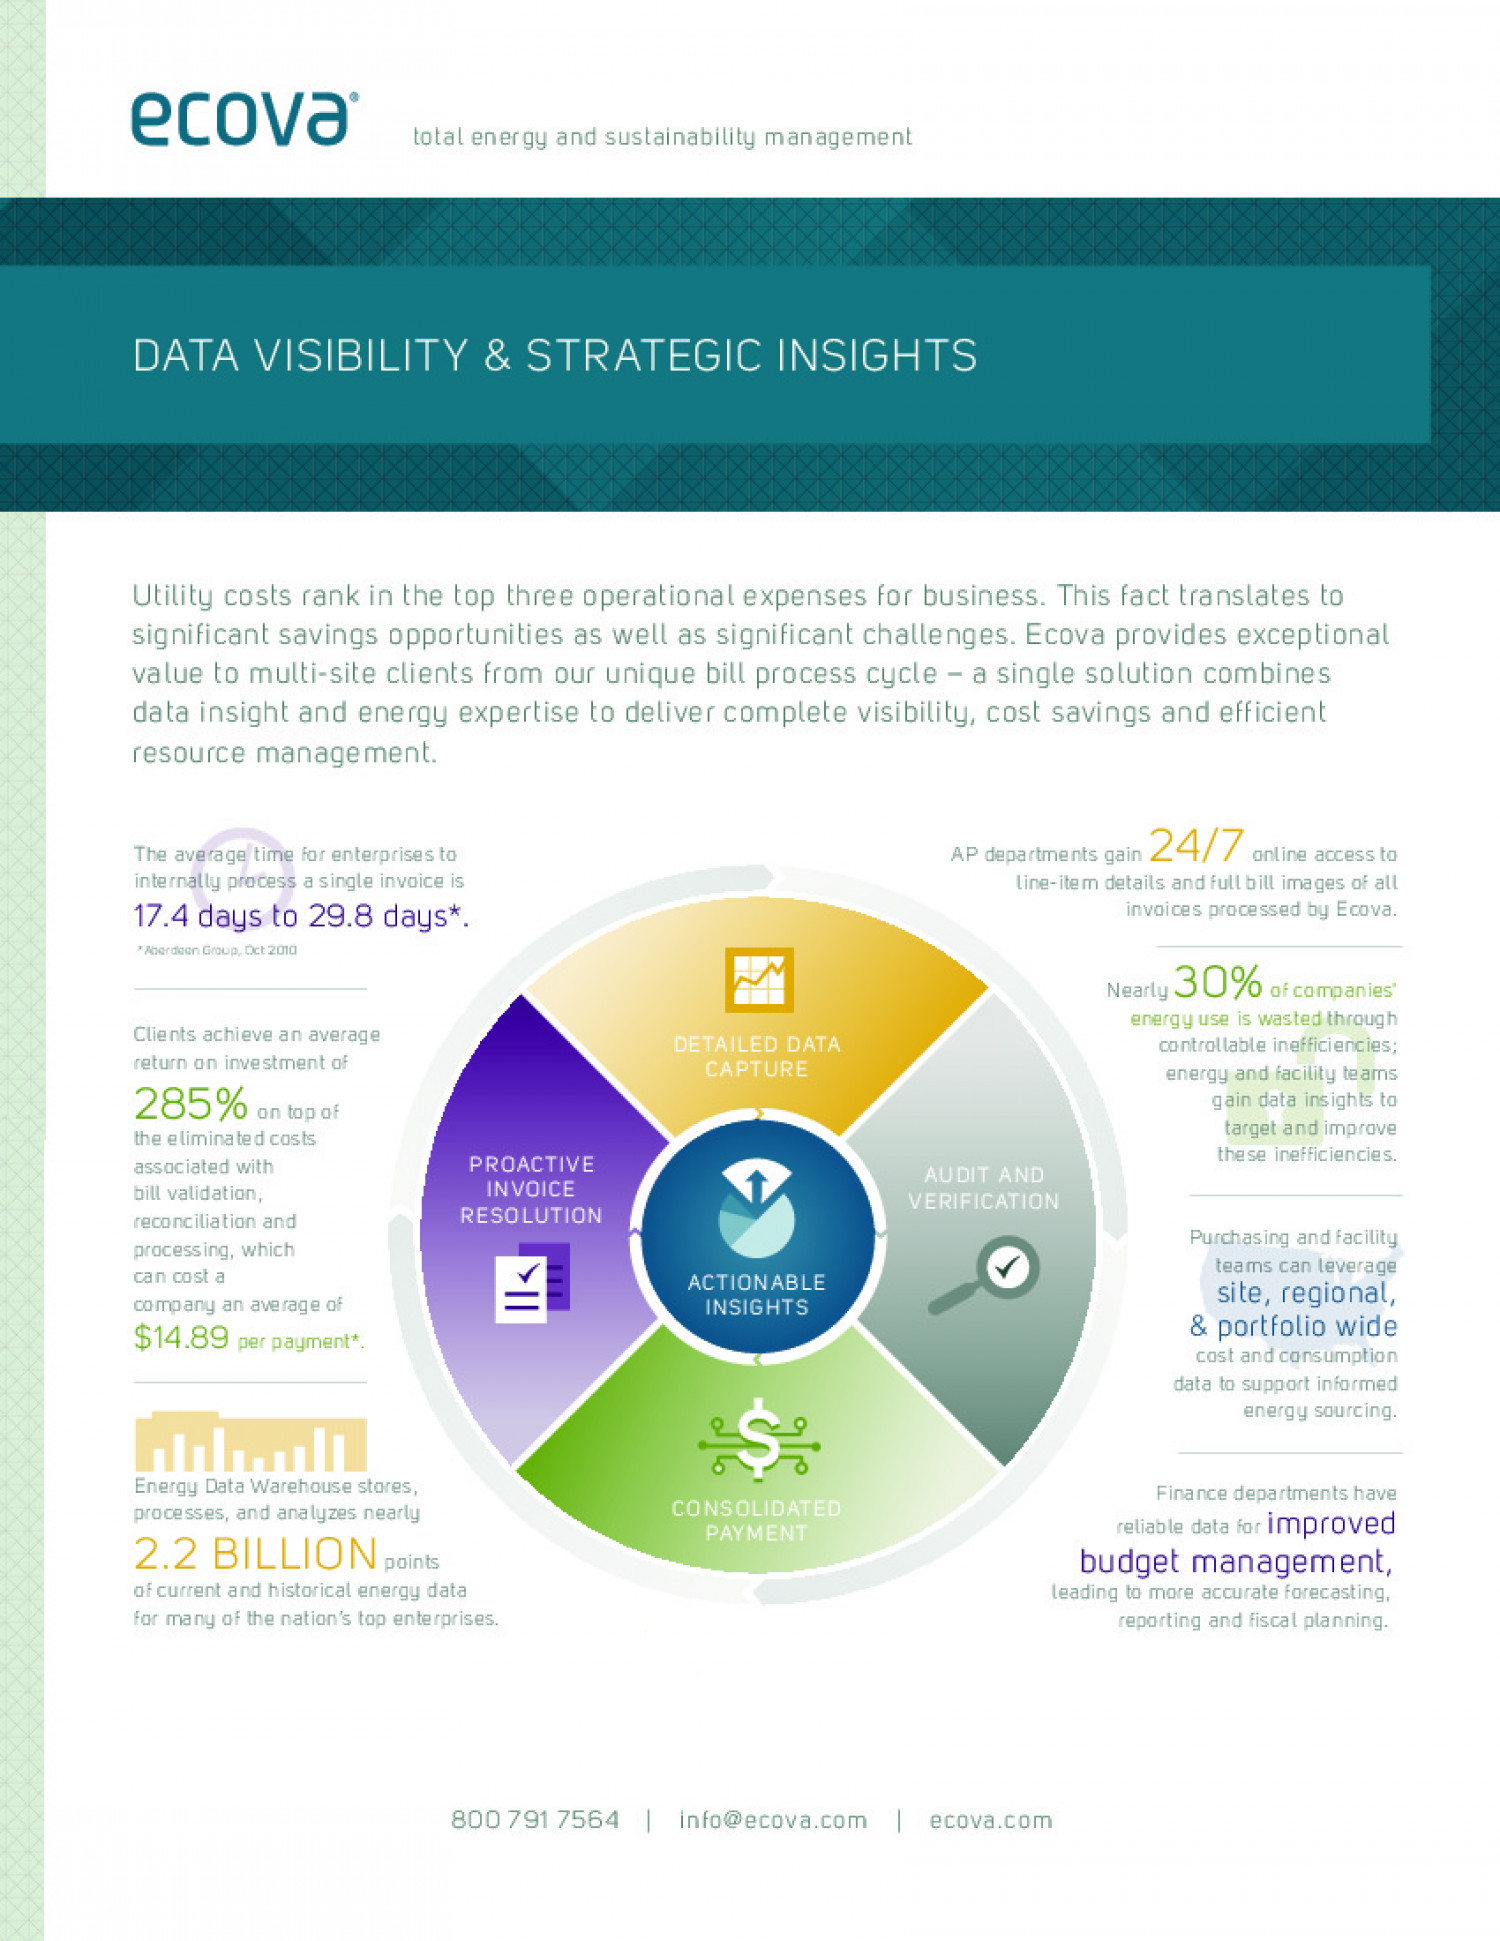 Ecova: Data Visibility & Strategic Insights Infographic